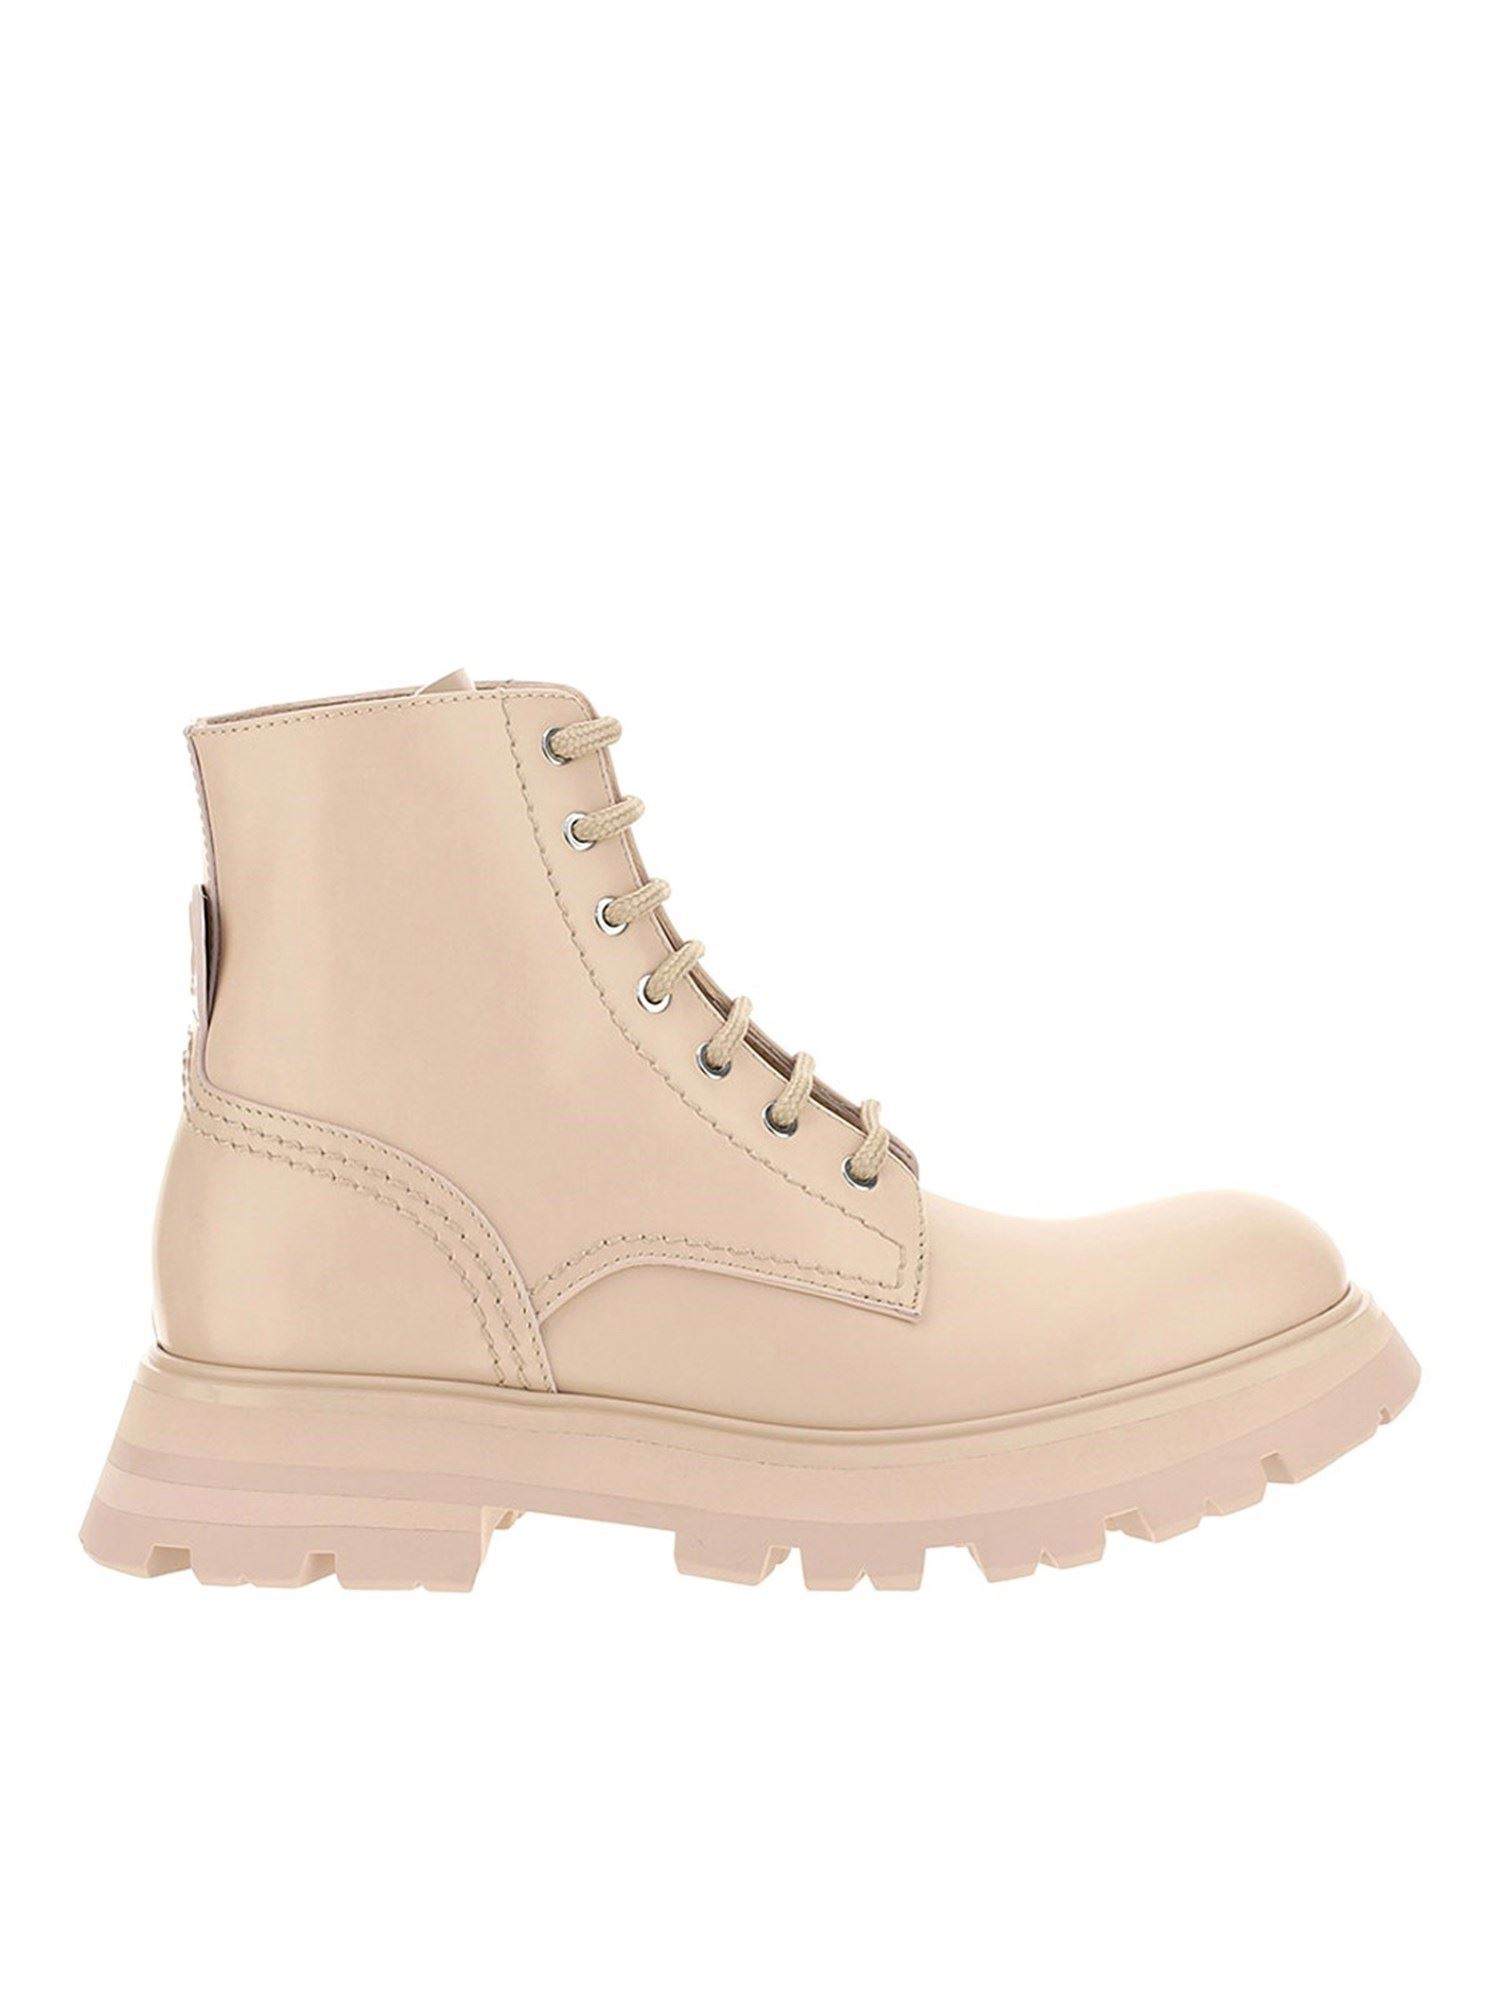 Alexander Mcqueen ALEXANDER MCQUEEN WANDER COMBAT BOOTS IN BEIGE